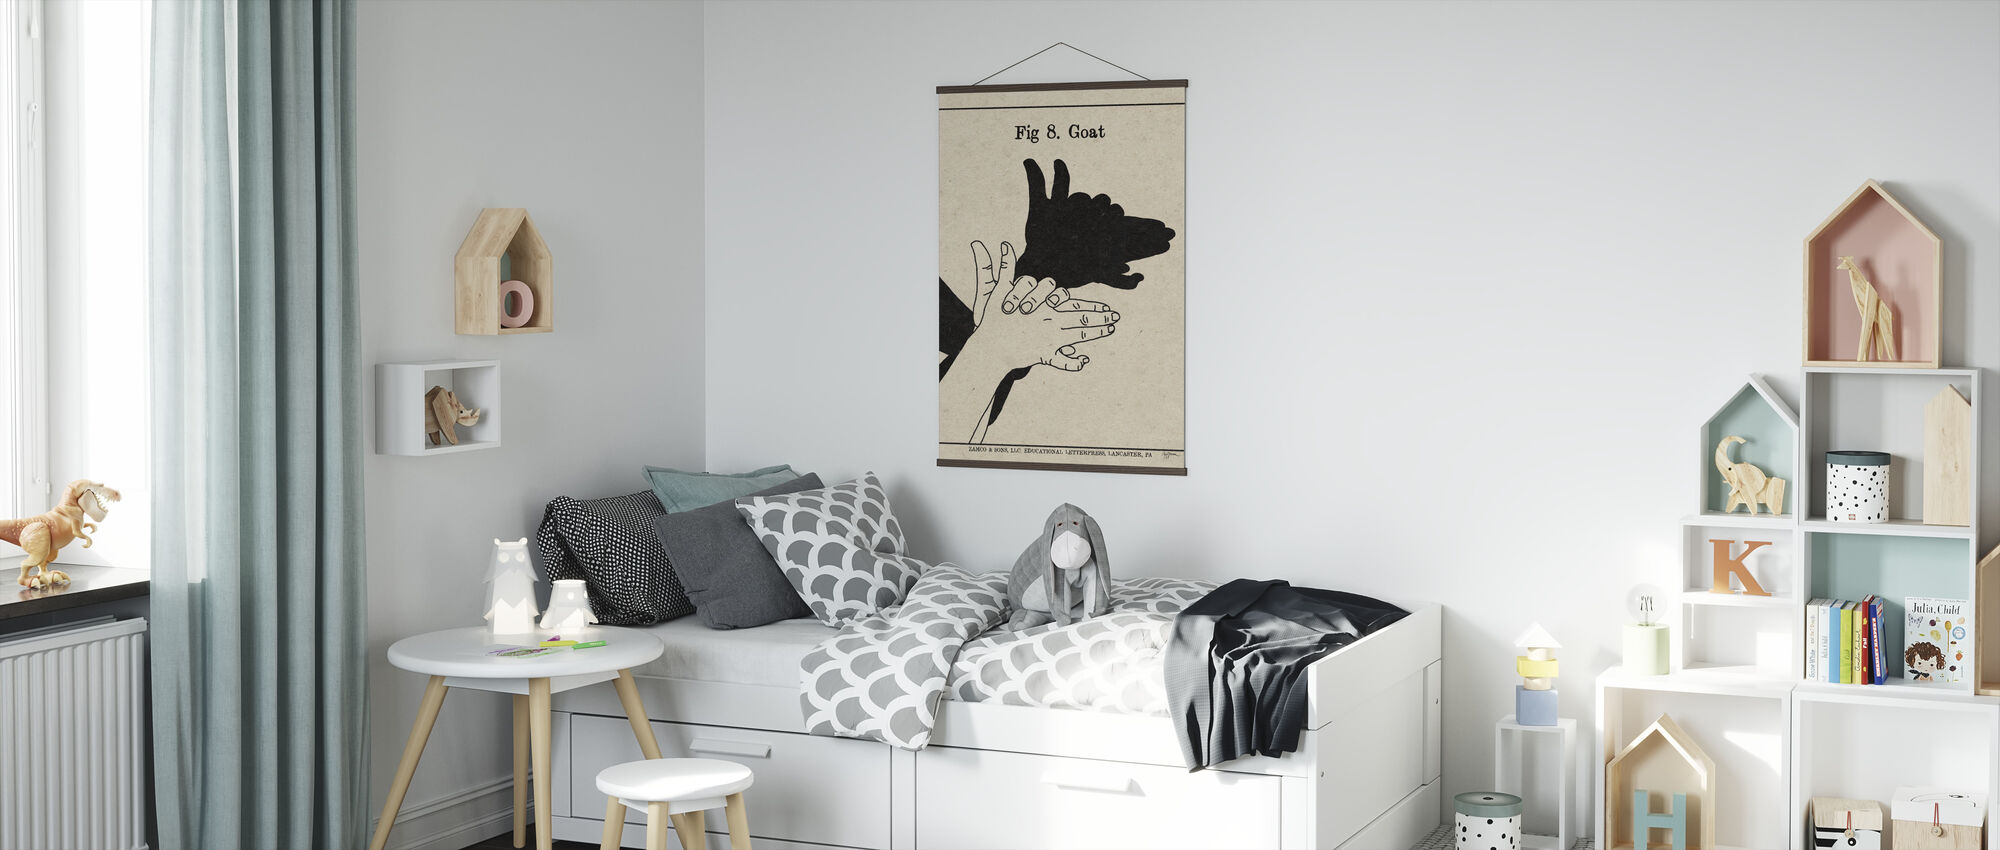 The Art of Shadows - Goat - Poster - Kids Room